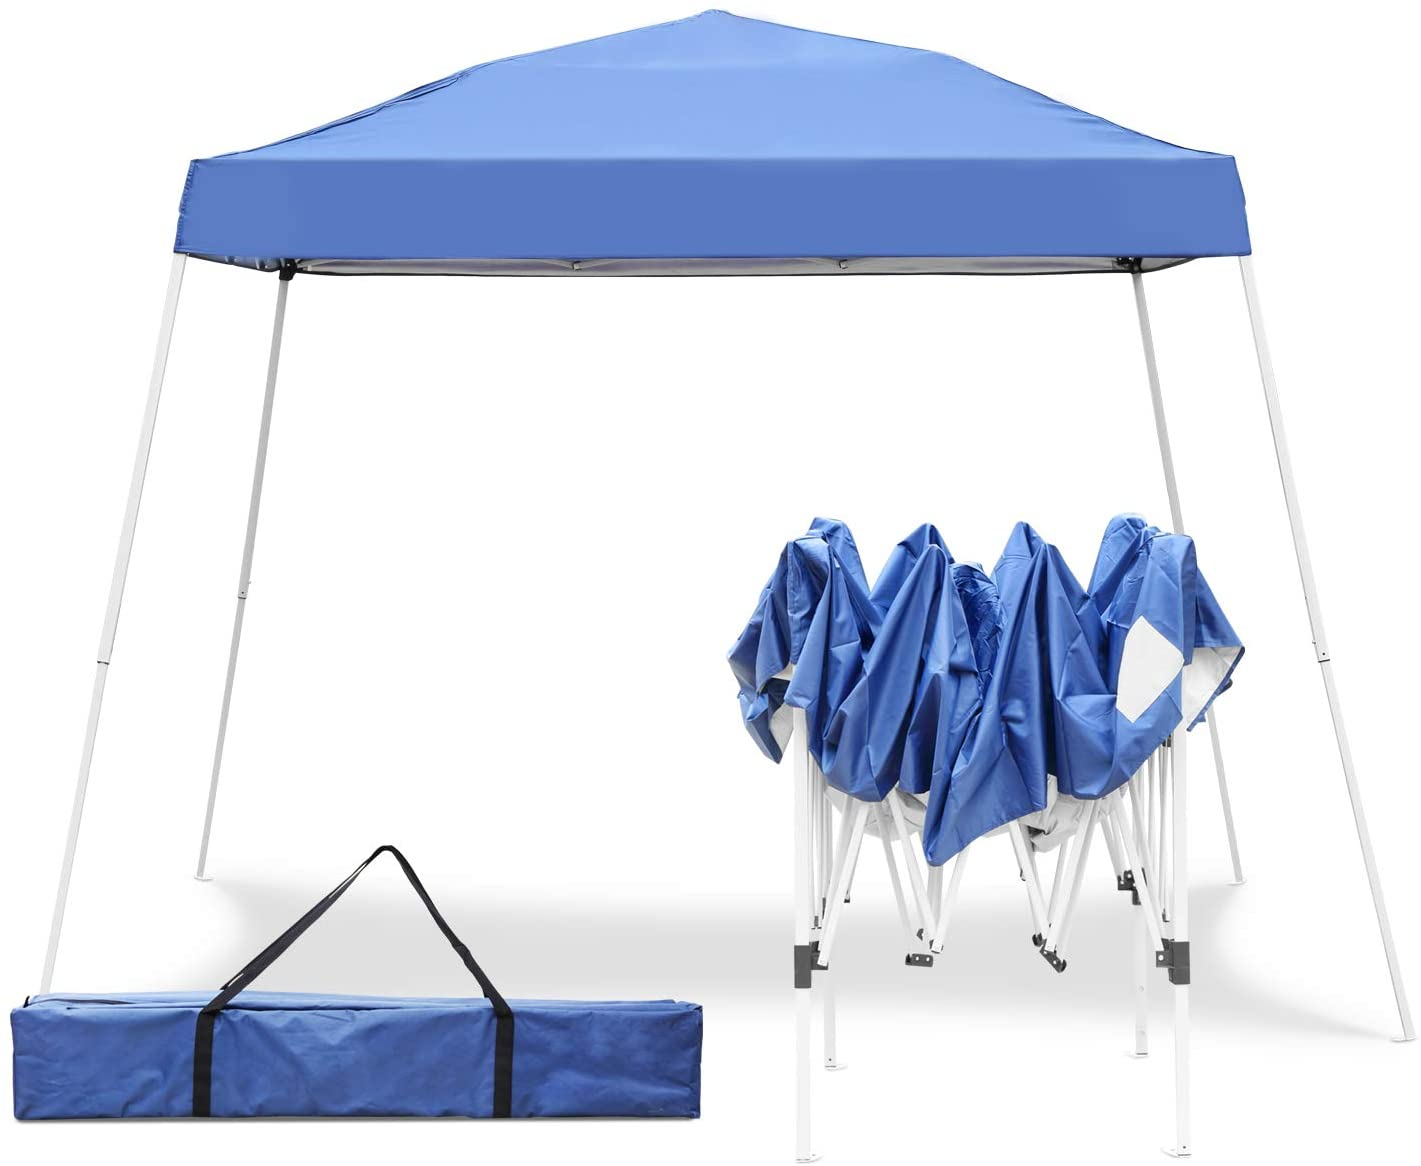 HYD-parts canopy tent